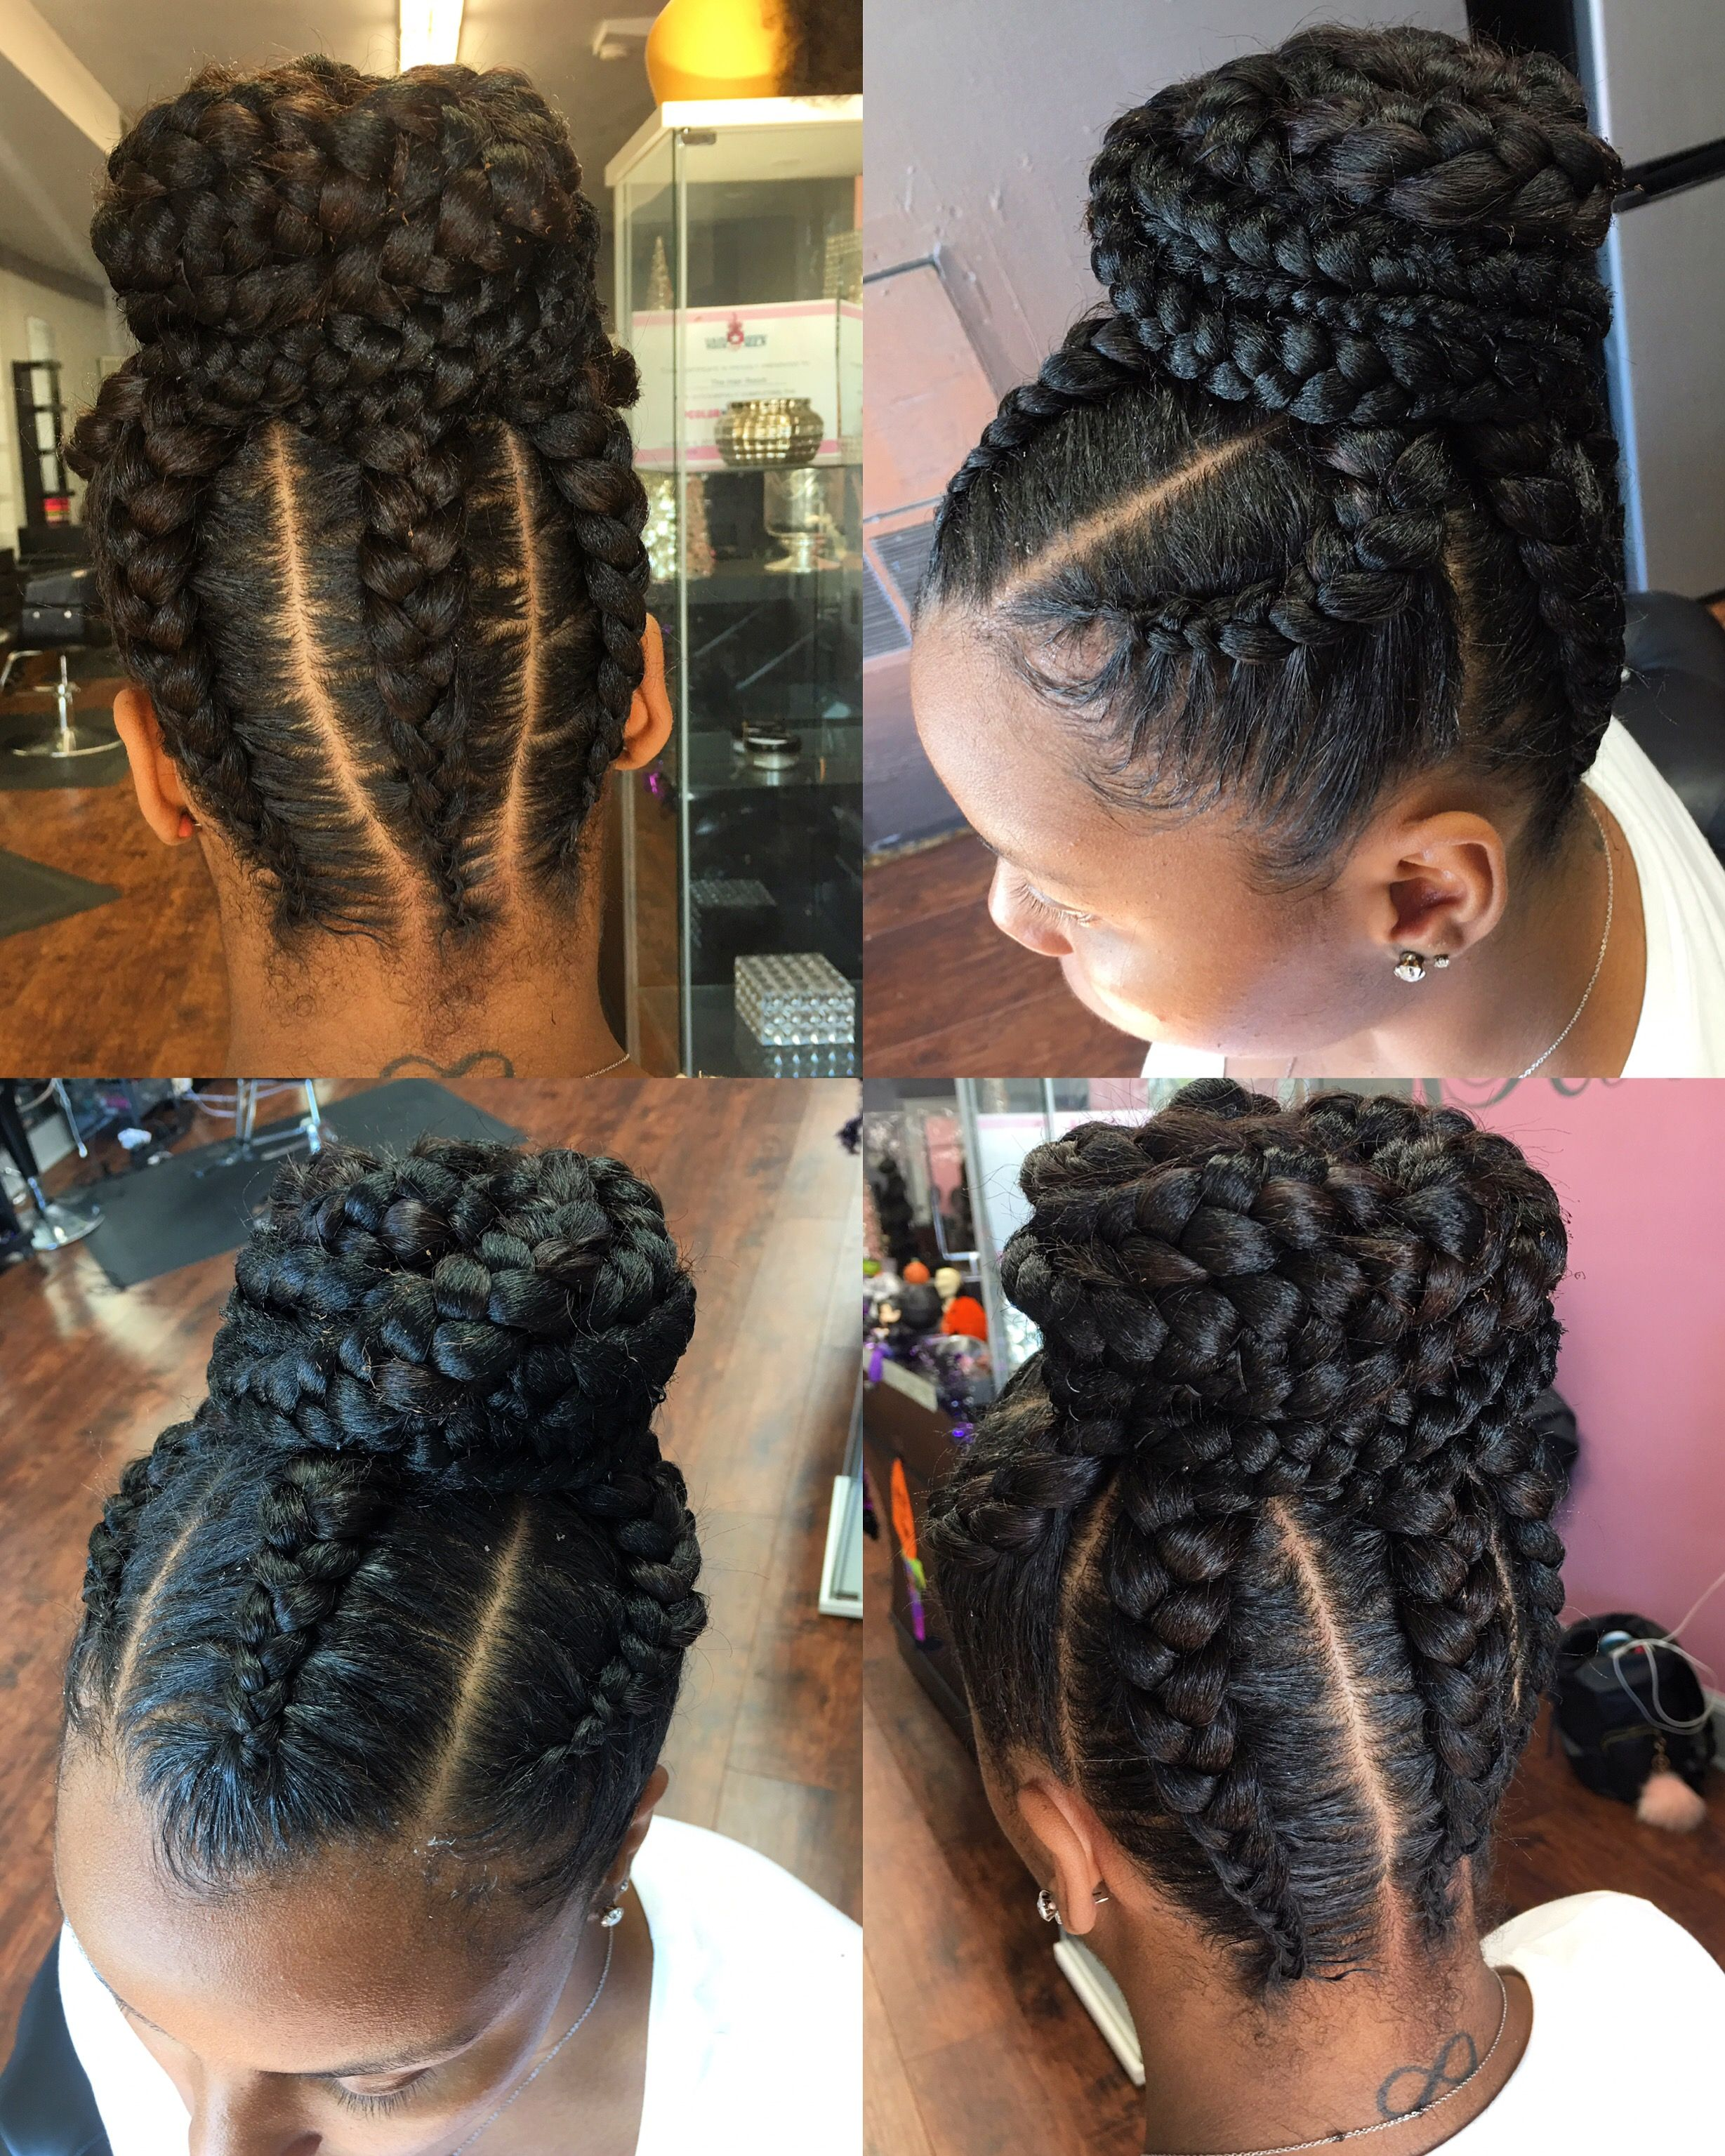 Get Into This Updo With Goddess Feedin Braids Natural Hair Styles Cornrow Updo Hairstyles Hair Styles